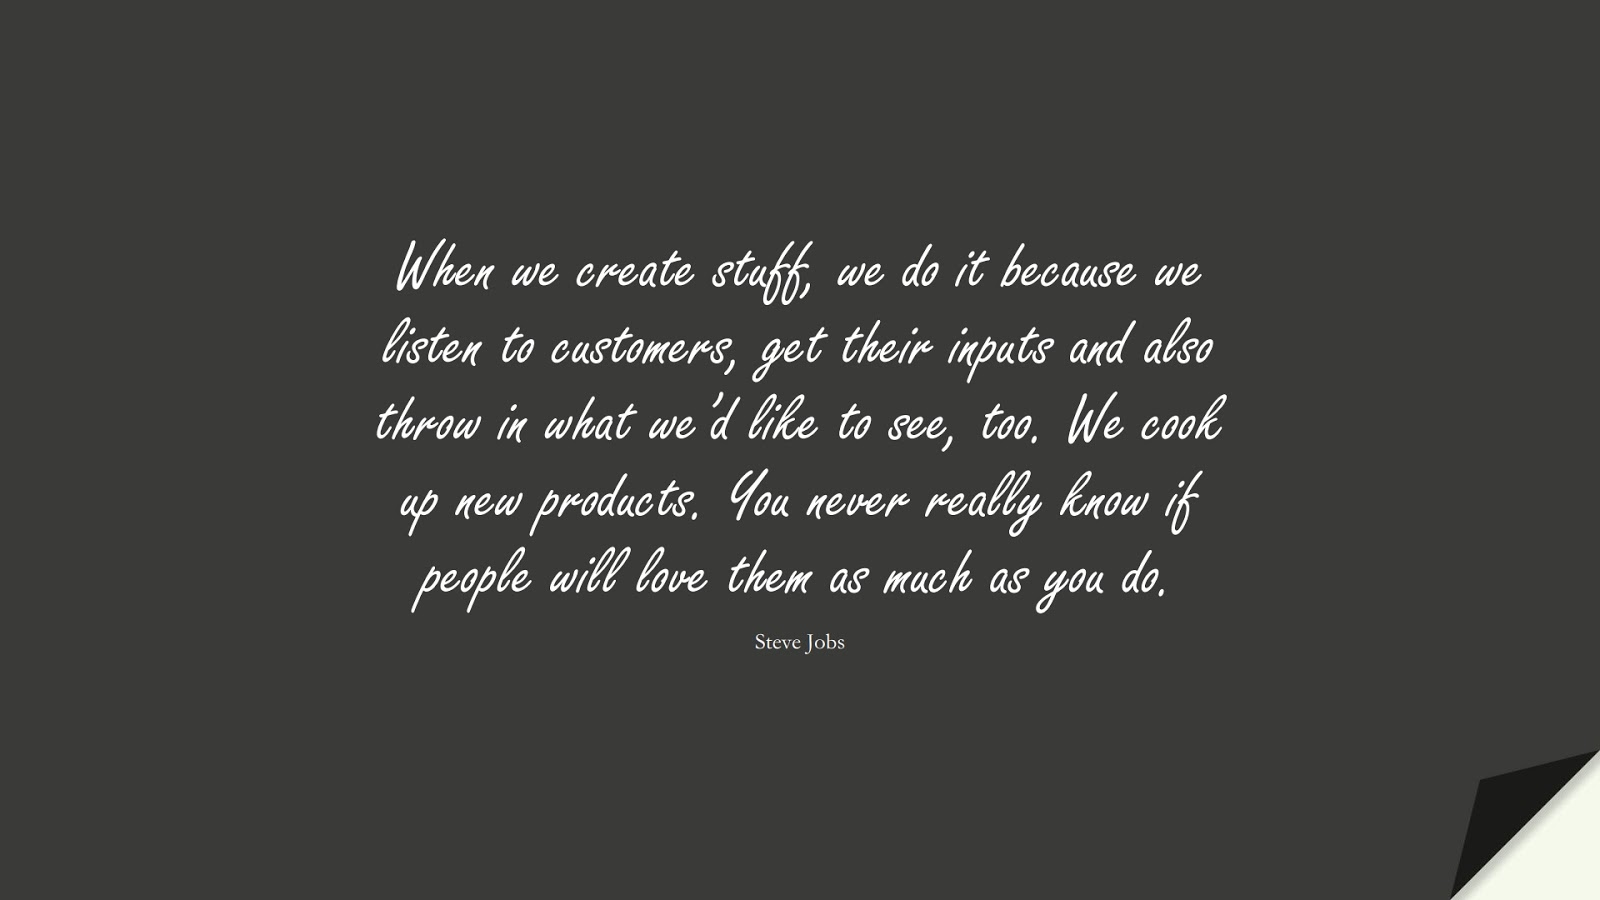 When we create stuff, we do it because we listen to customers, get their inputs and also throw in what we'd like to see, too. We cook up new products. You never really know if people will love them as much as you do. (Steve Jobs);  #SteveJobsQuotes